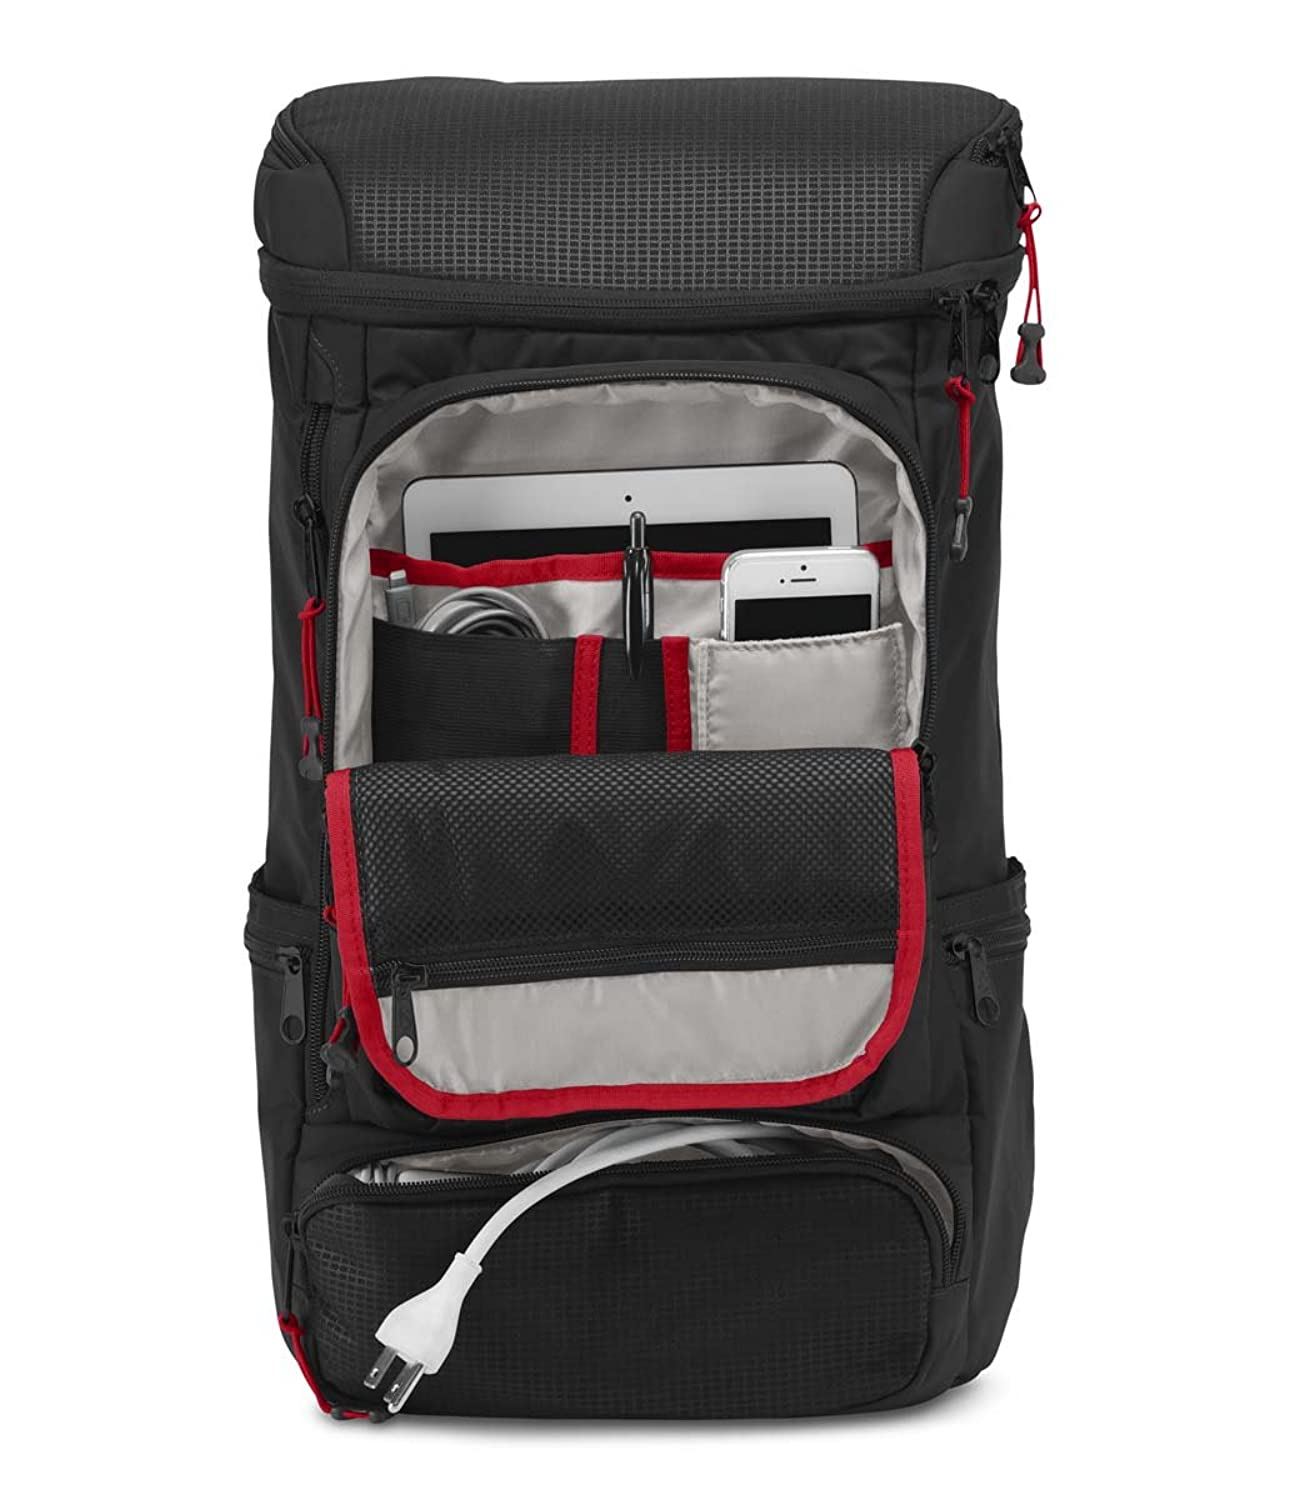 b5265b3b32c4 Jansport Mini Backpack Target- Fenix Toulouse Handball